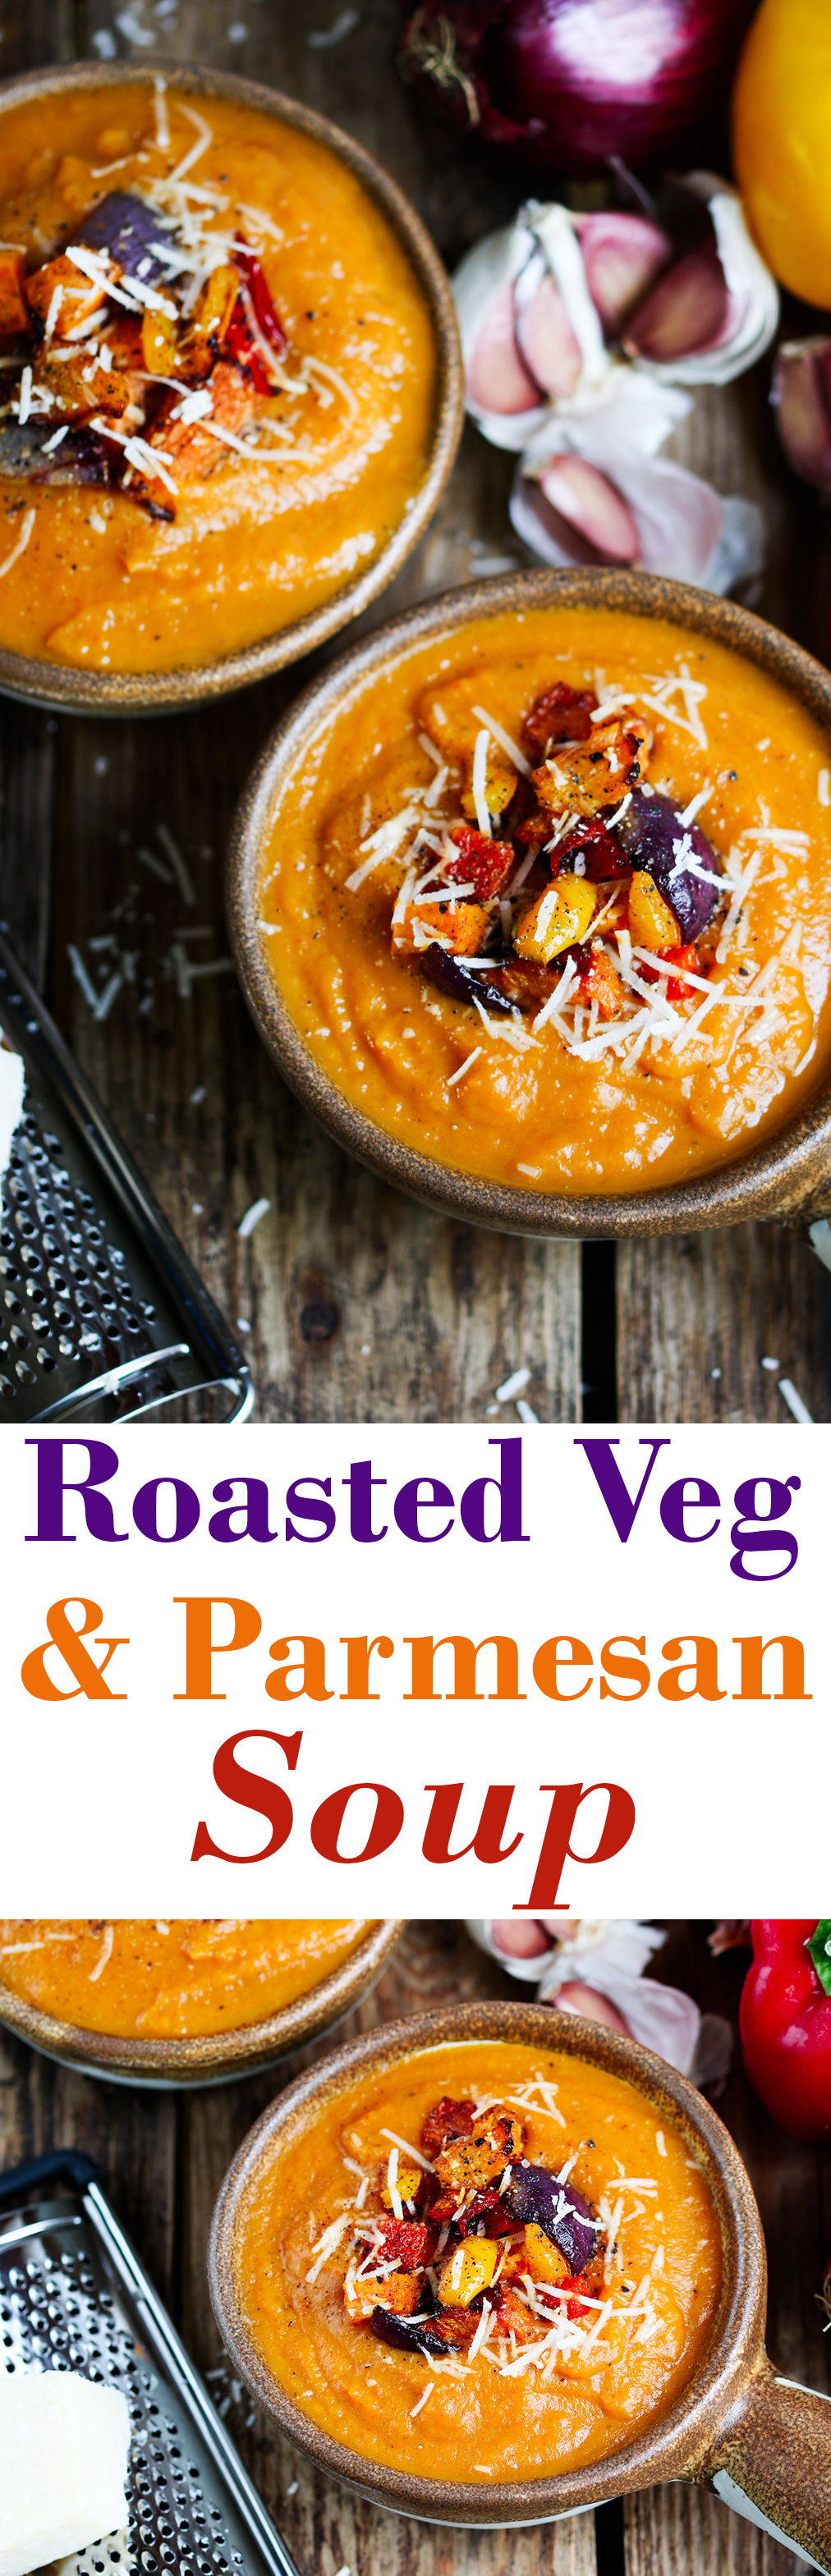 Roasted Veg and Parmesan Soup - a delicious winter lunch!